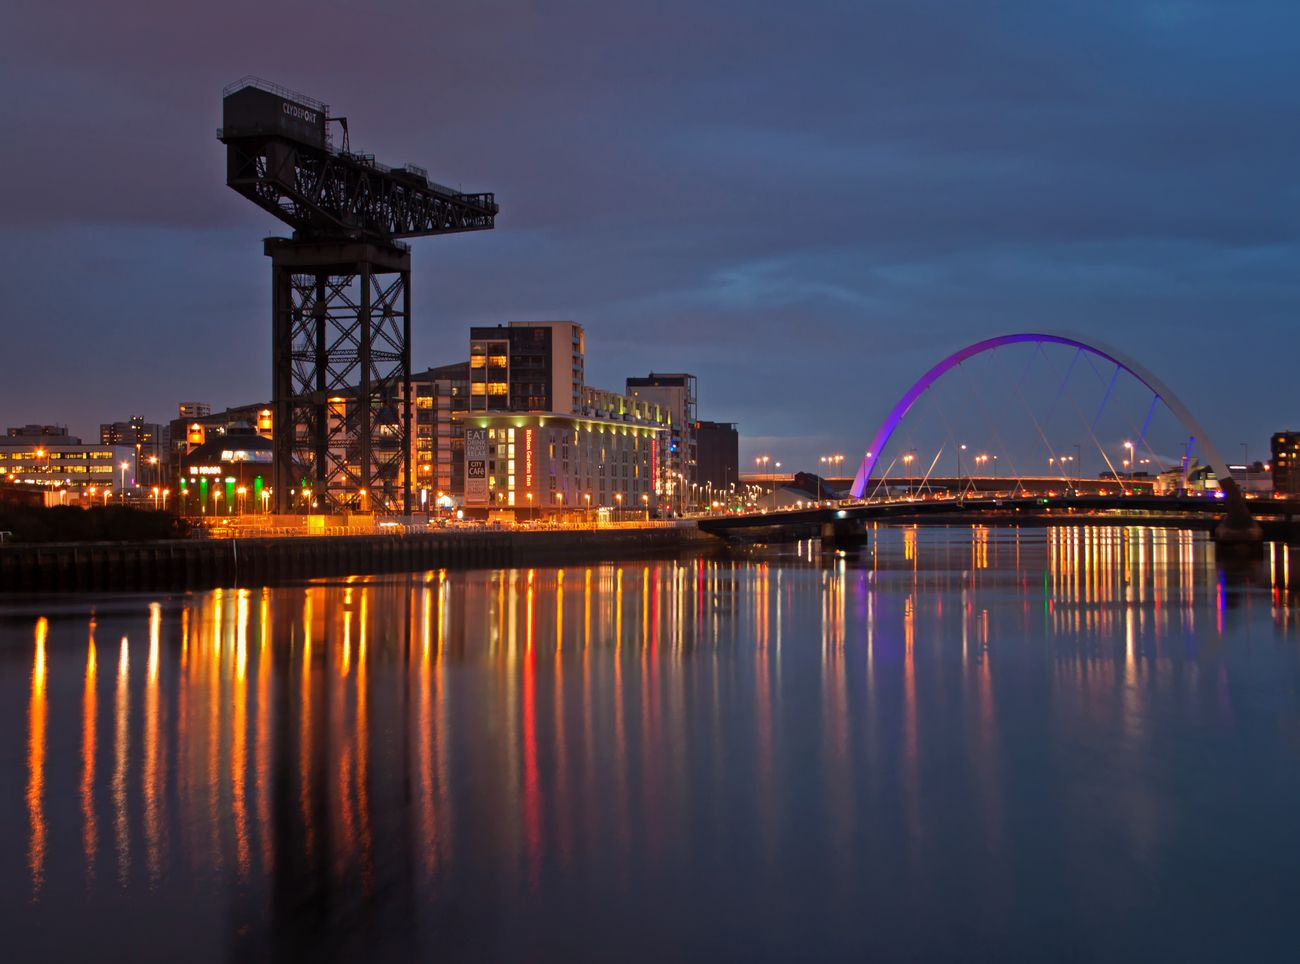 The gentrified section of the River Clyde, with just one remaining crane from the old shipyards. Viewed after dark